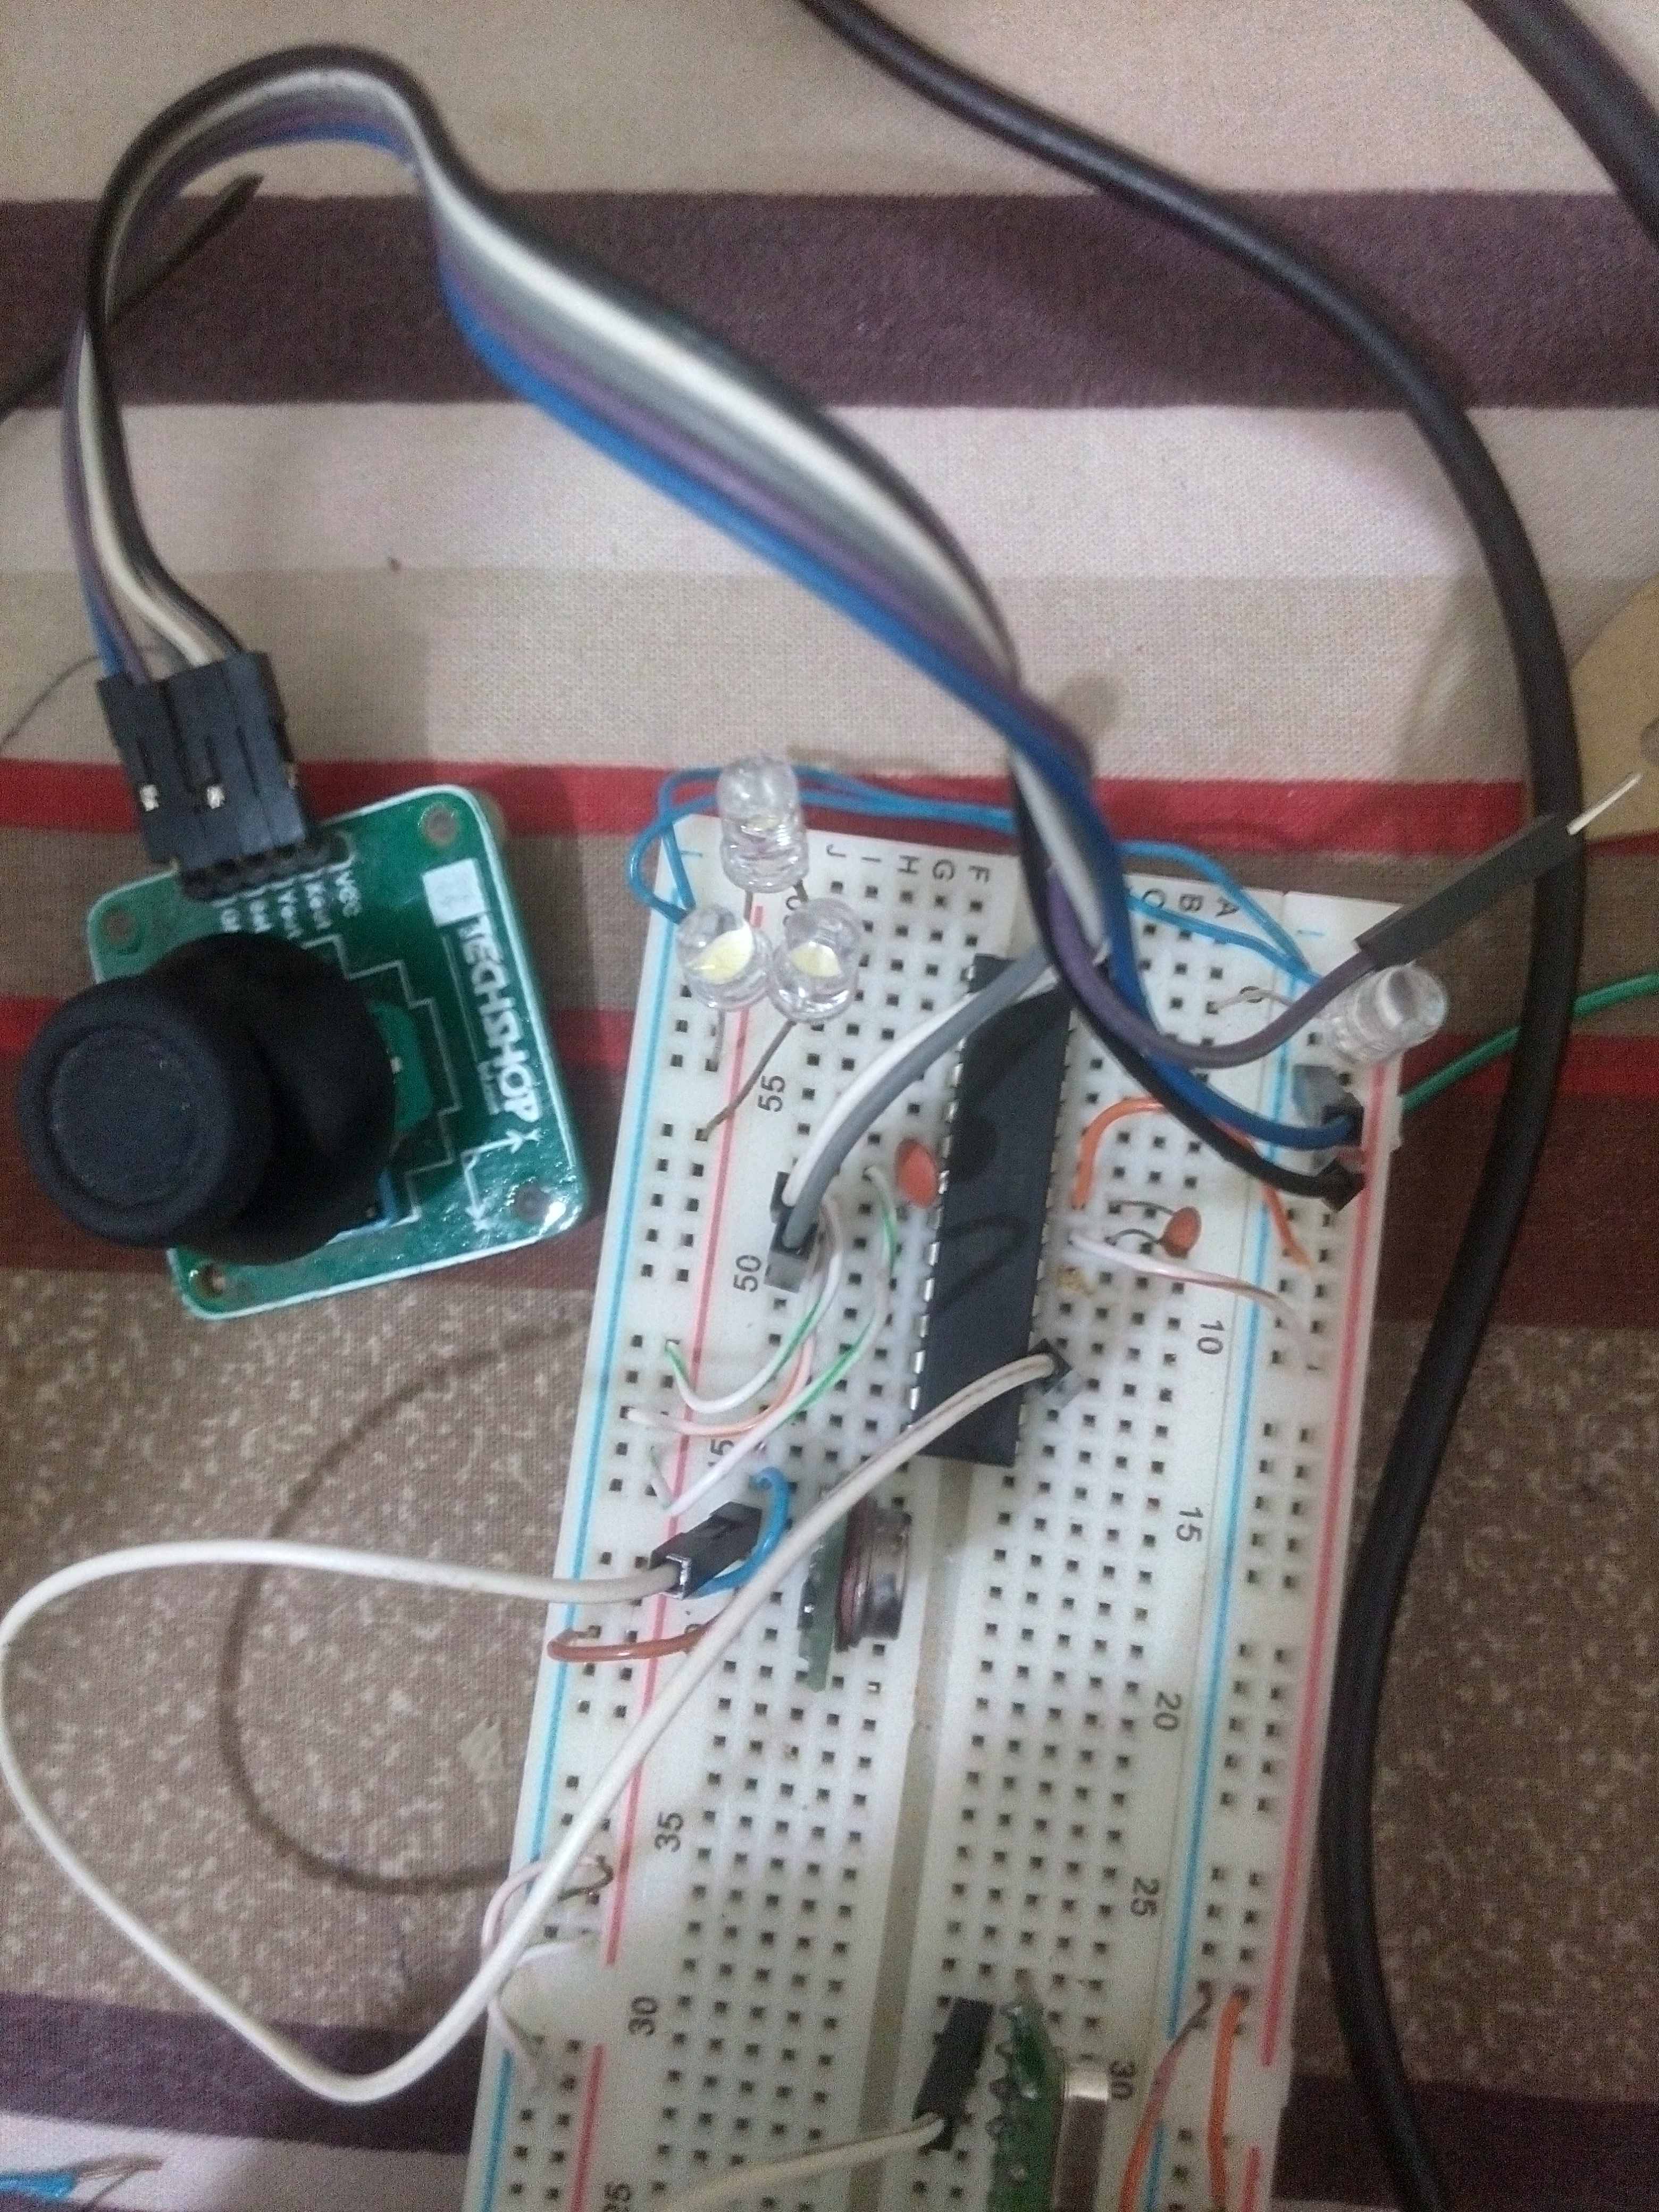 Rf Based Remote Controlled Car Not Responding Need Help Avr 433mhz Transmitter Circuit Diagram Mcu With Joystick